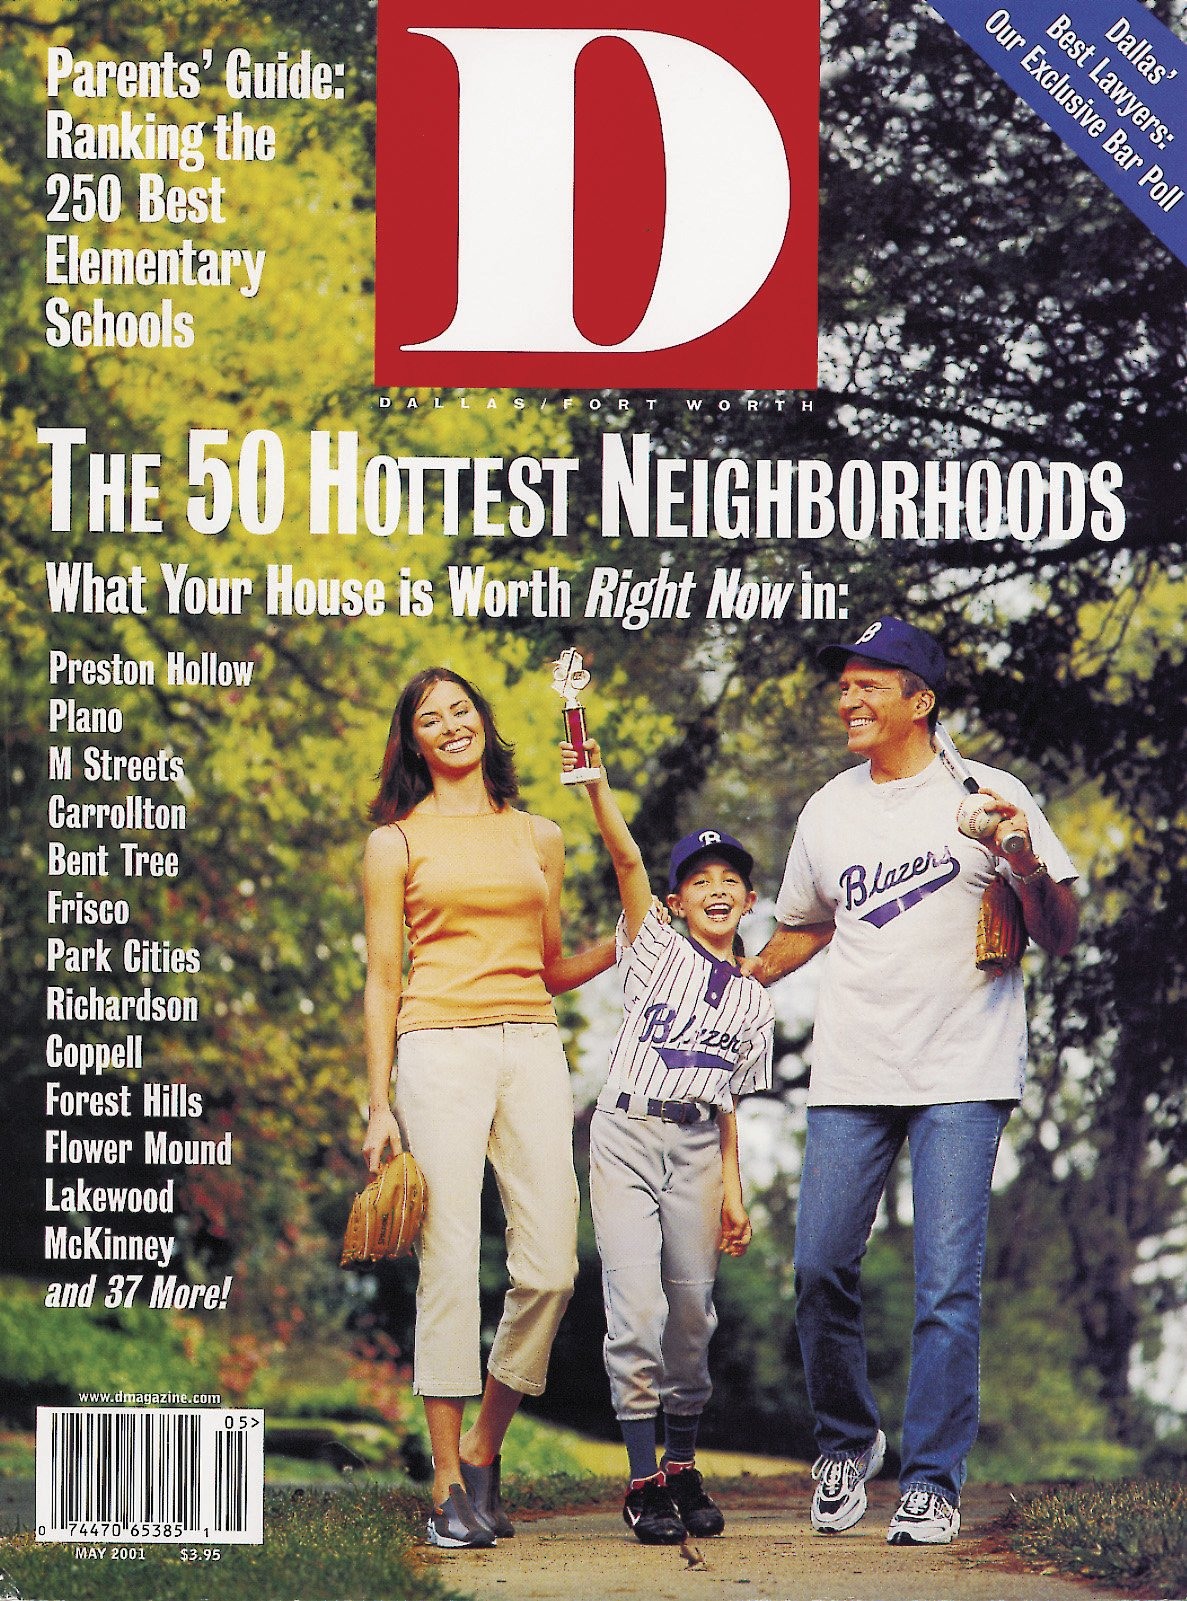 May 2001 cover